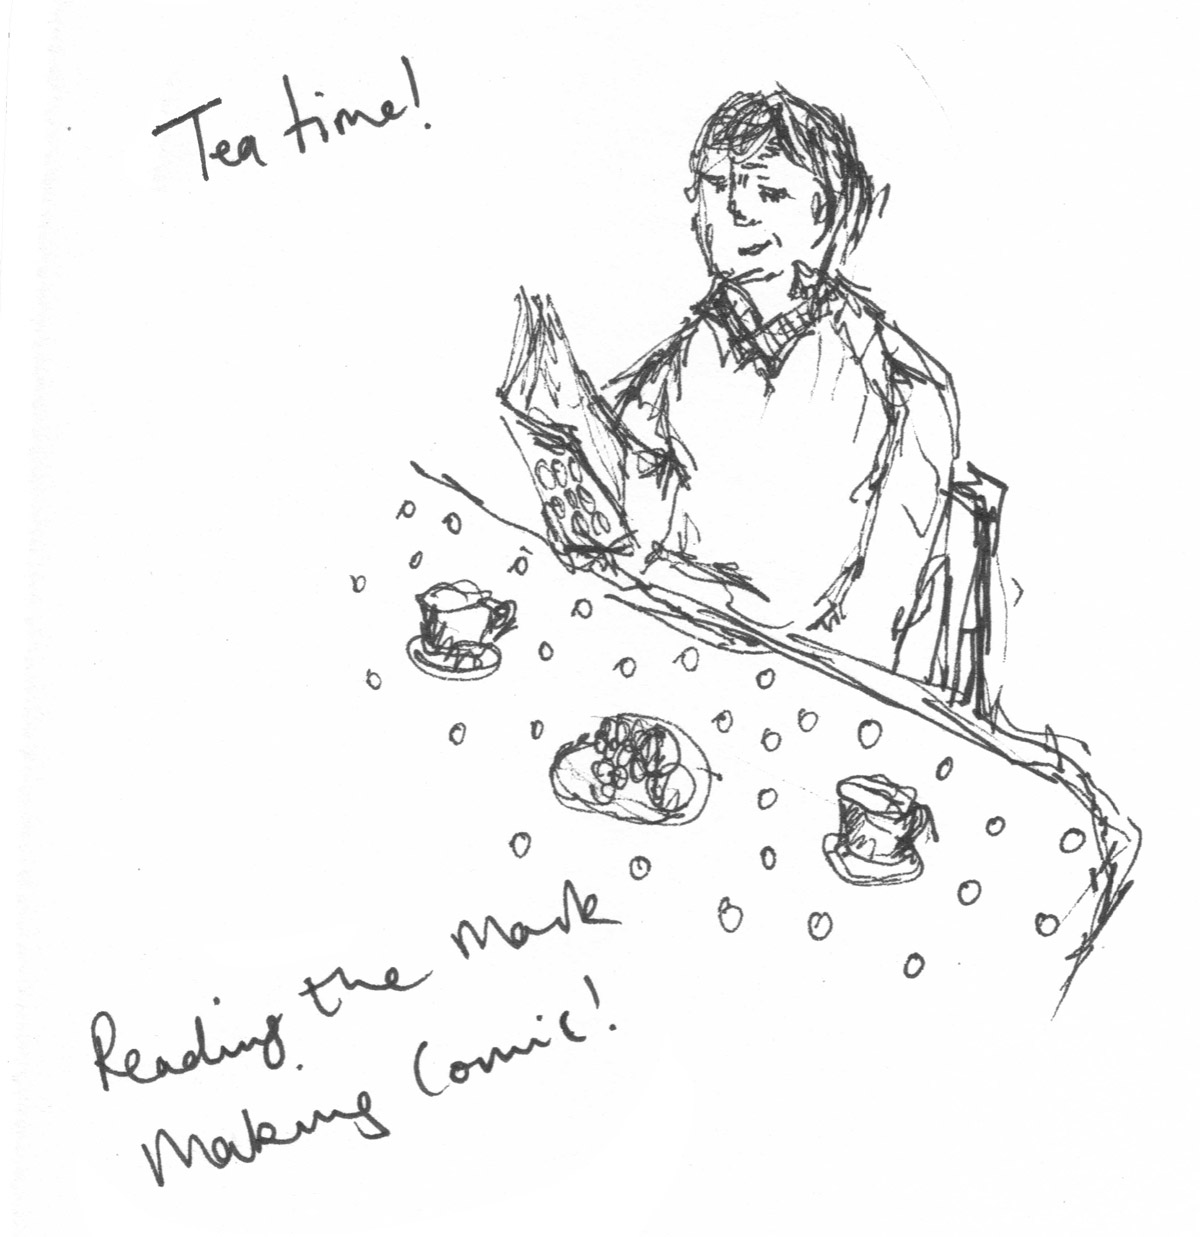 14.-Ann-reading-the-Mark-Making-Comic-at-tea-time